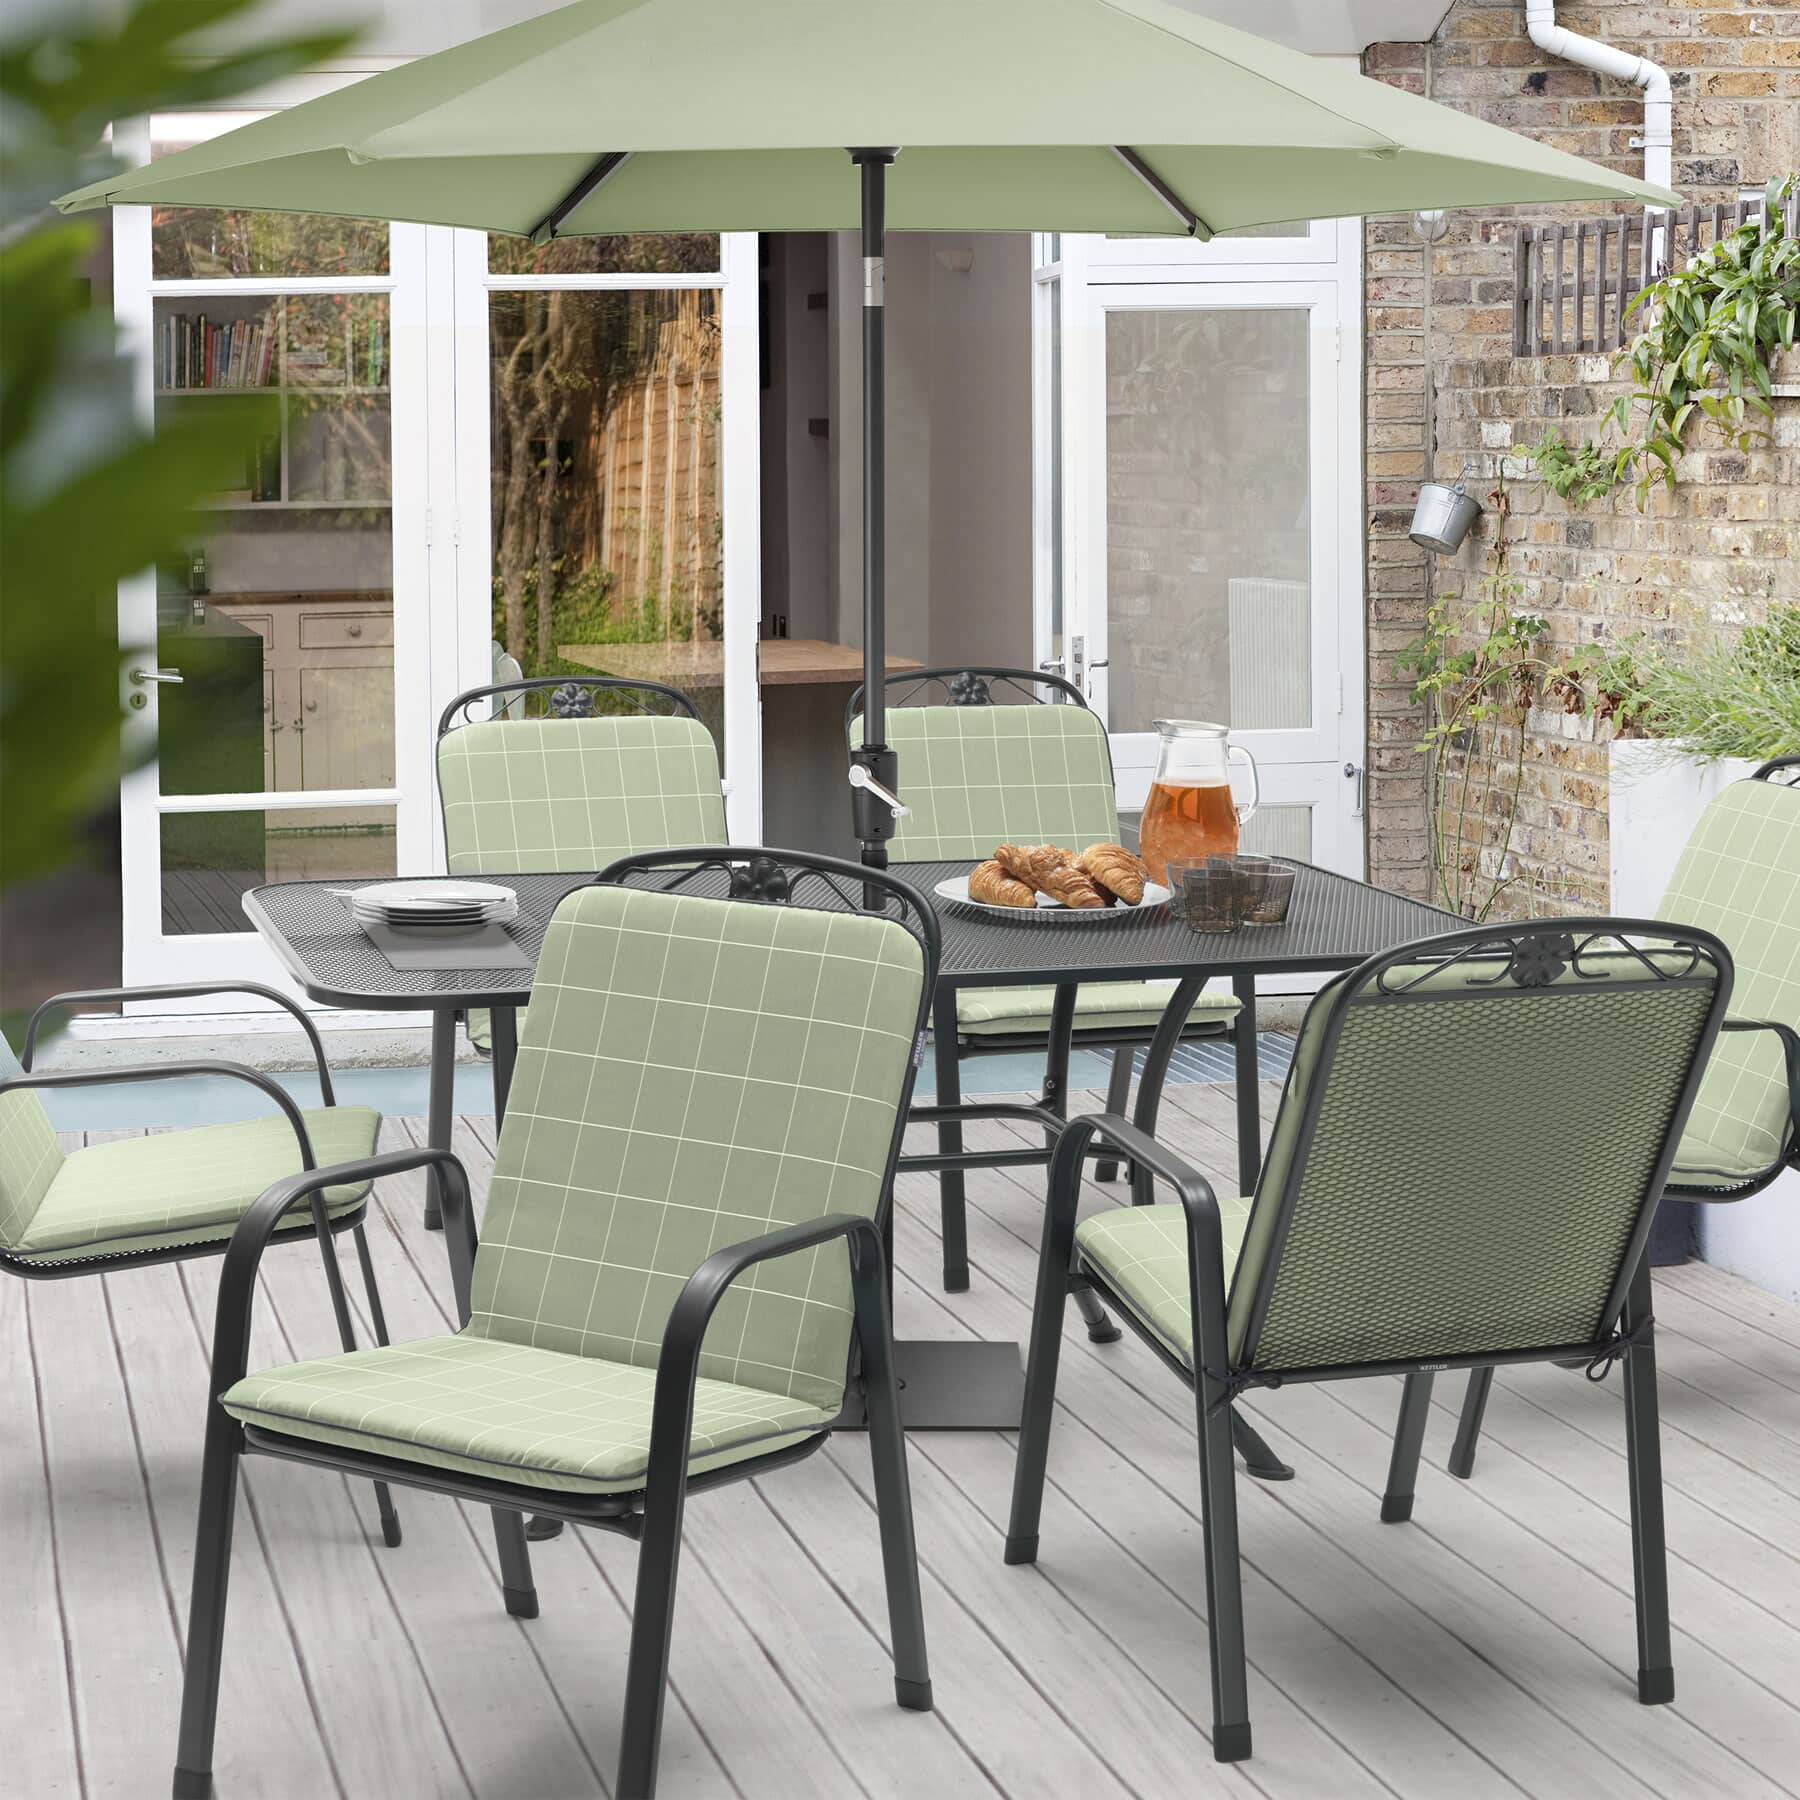 Kettler Siena 6 Seat Set KSIESET03 Garden Furniture